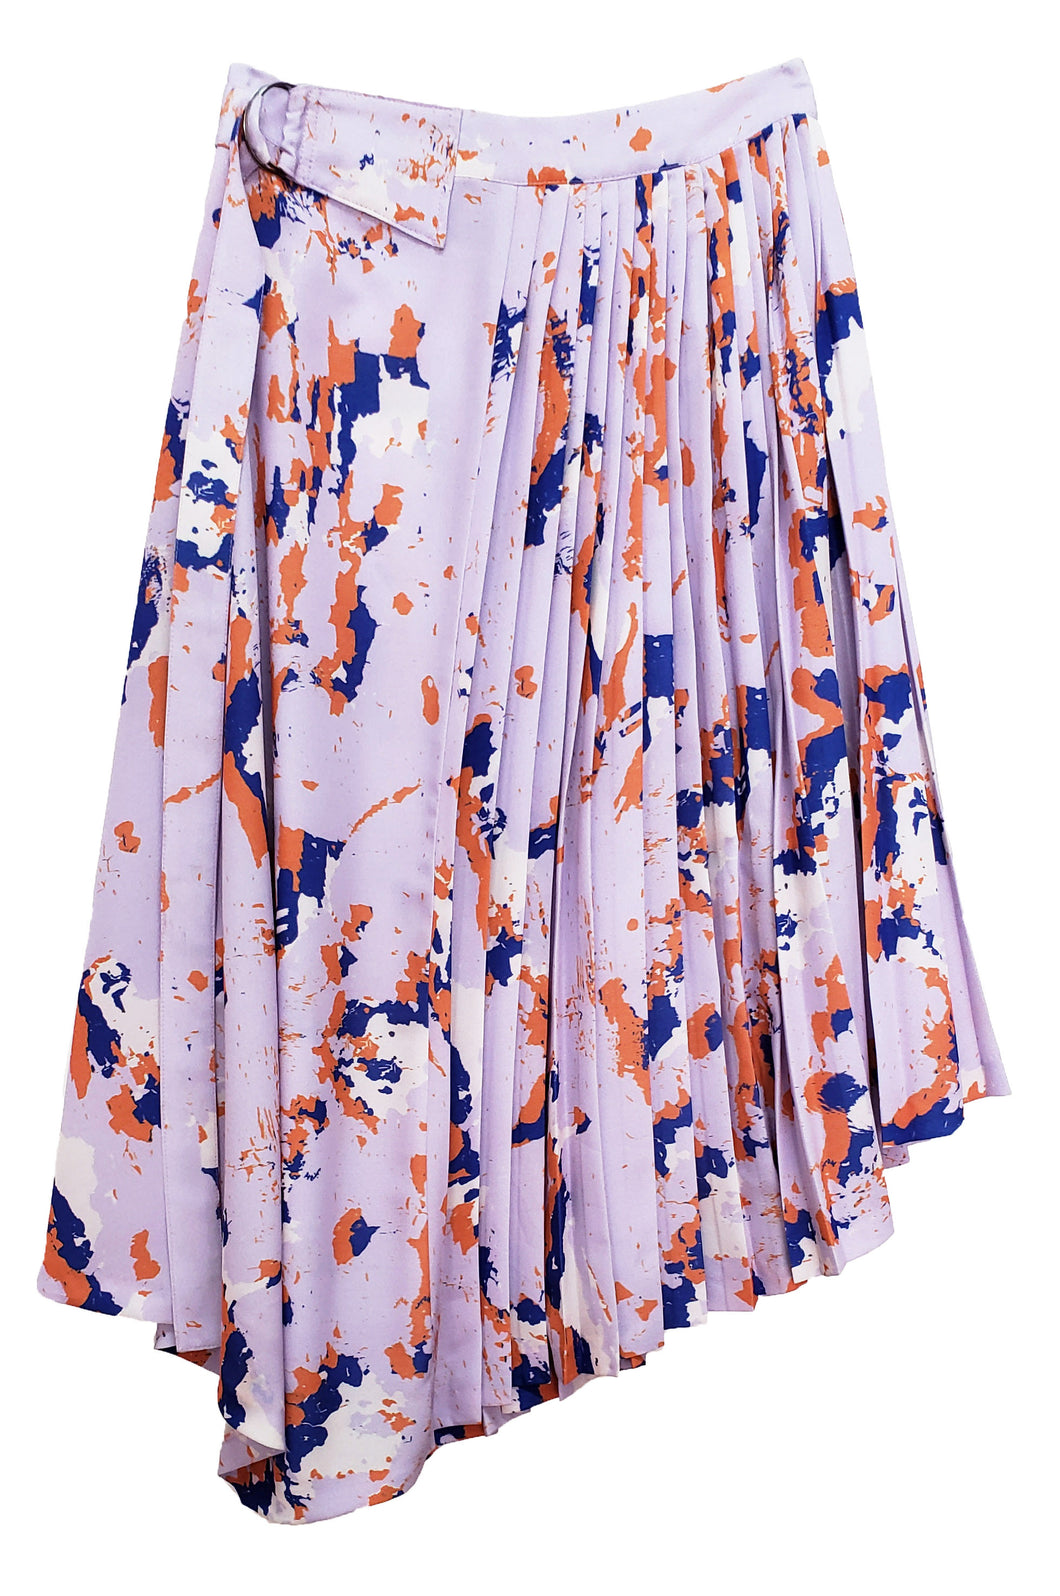 'VS002 'Unity print asymmetrical skirt